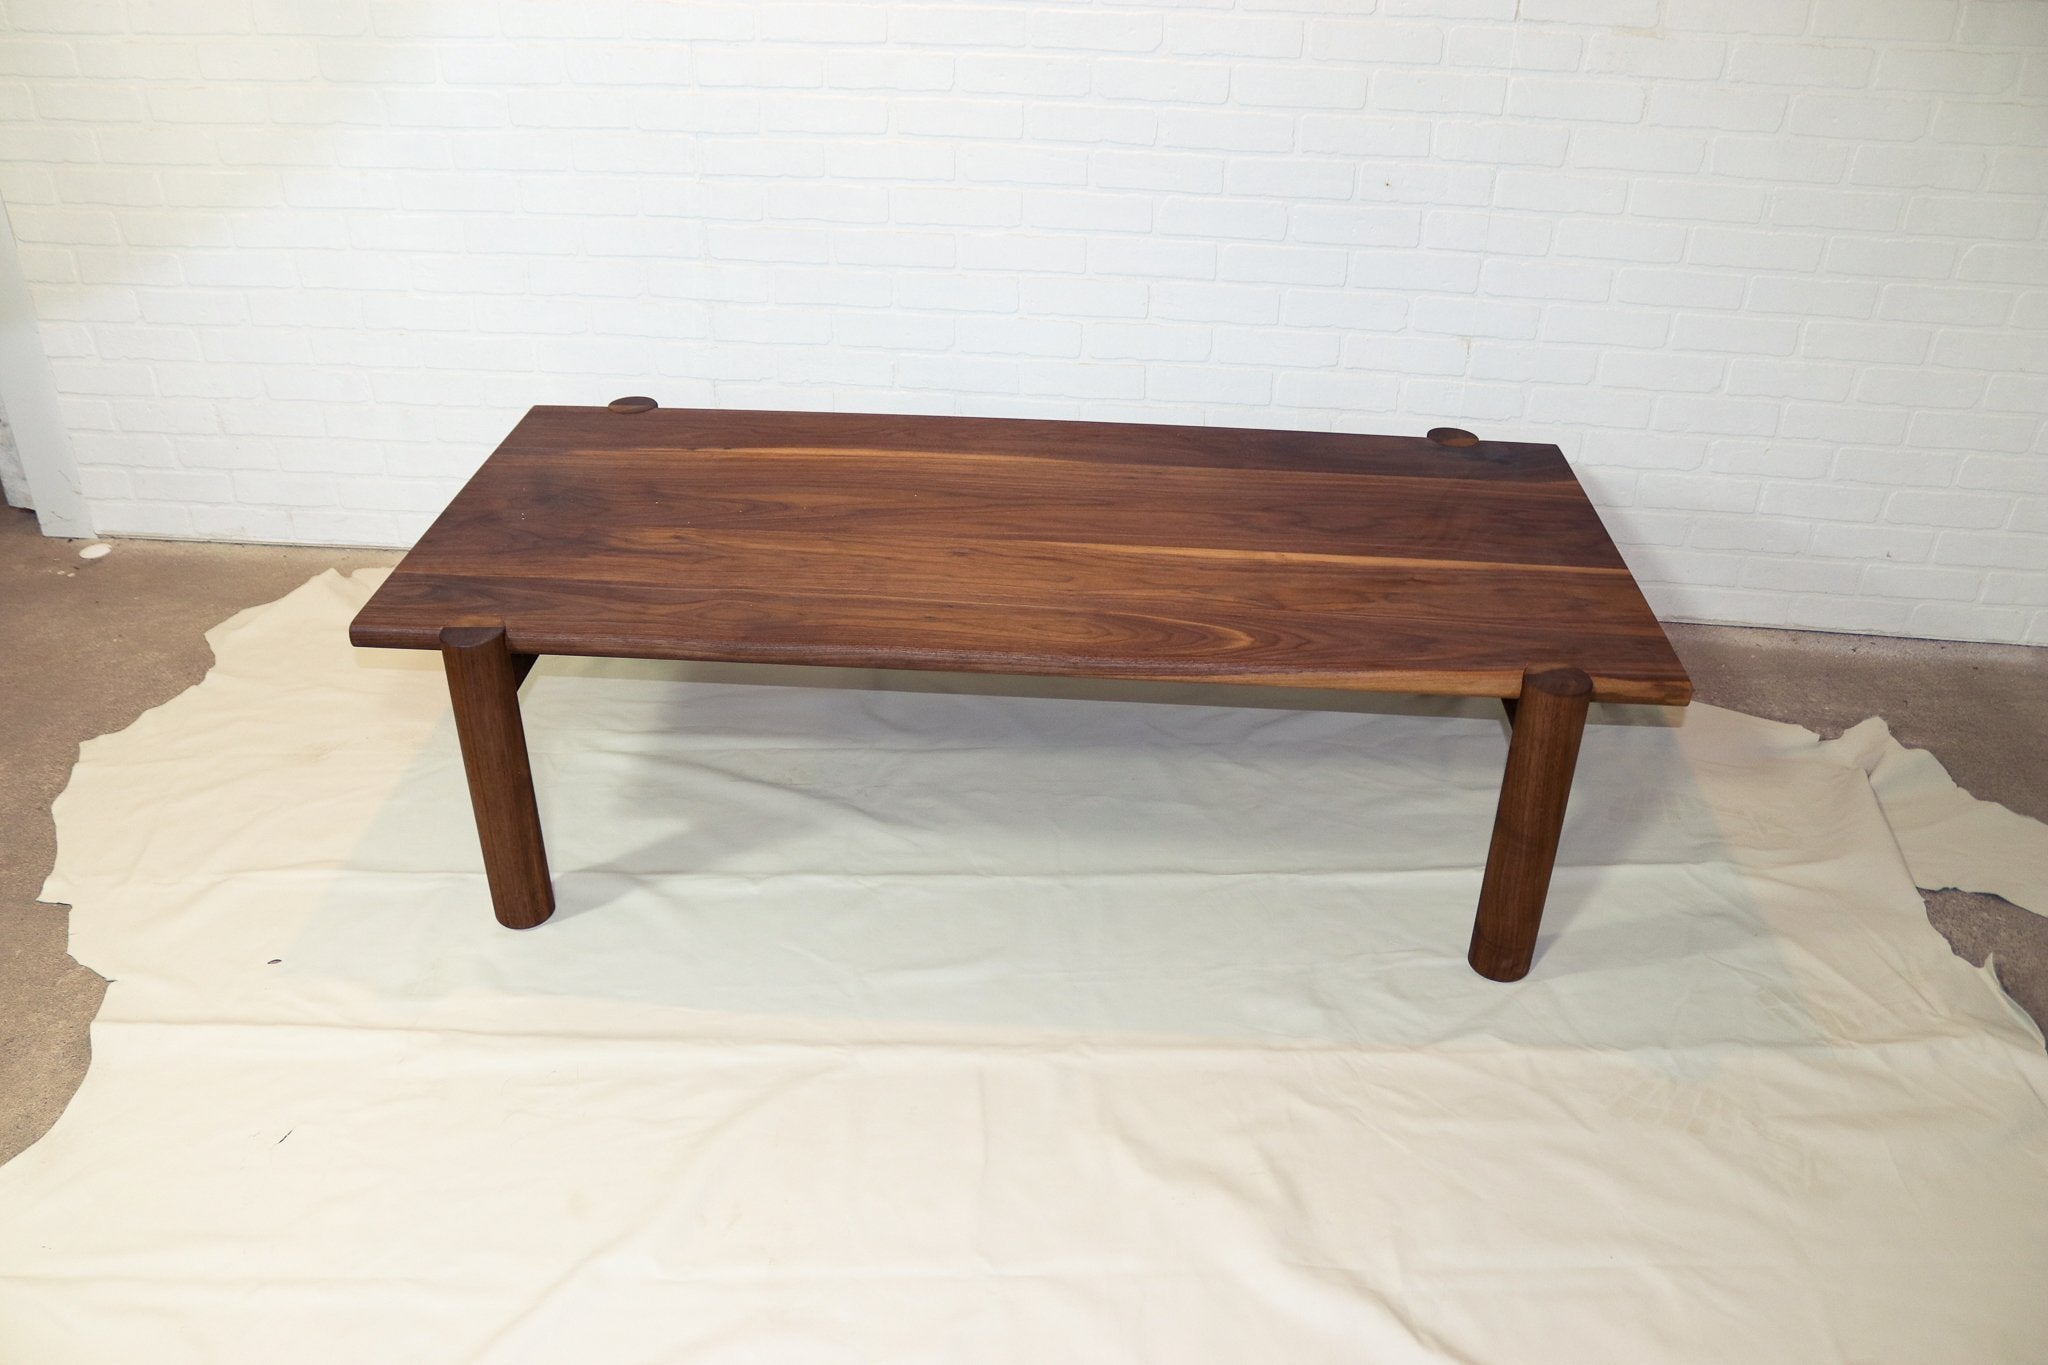 Bullnose Walnut Coffee Table - Loewen Design Studios